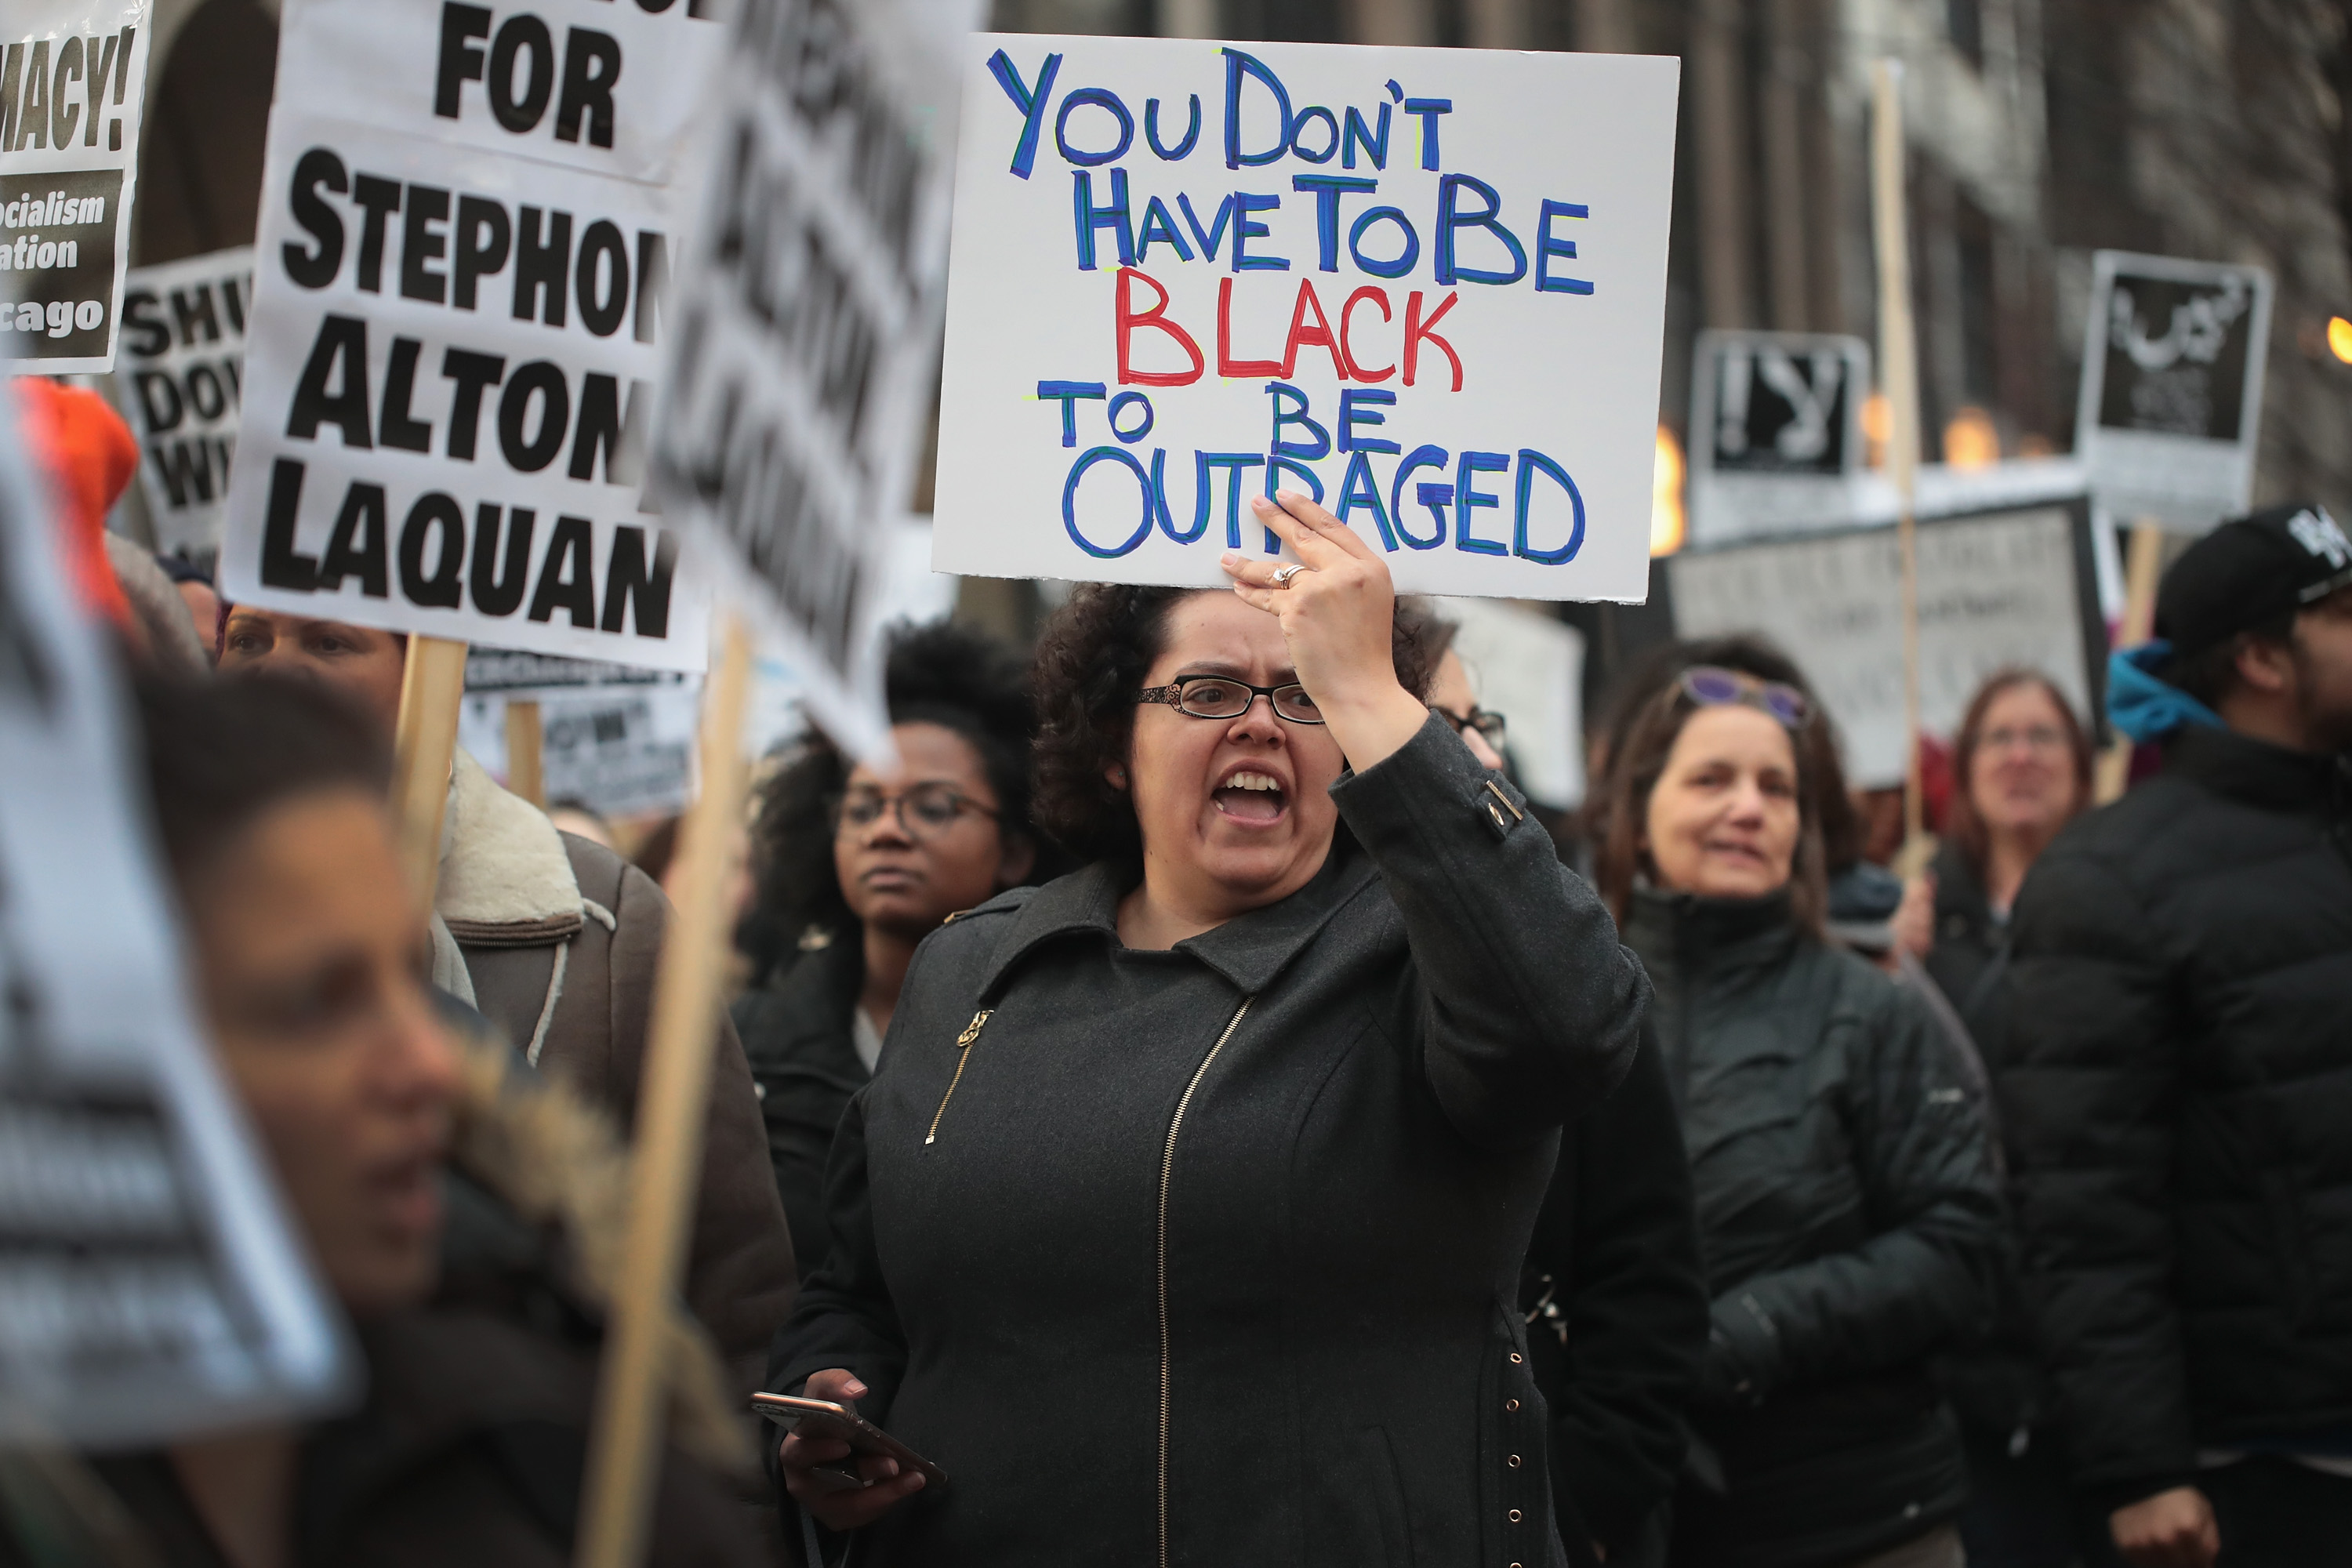 CHICAGO, IL - APRIL 02: In recognition of the 50th anniversary of the death of Dr. Martin Luther King Jr., and in solidarity with the family and supporters of Stephon Clark and others killed by police, demonstrators protest and march in the Magnificent Mile shopping district on April 2, 2018 in Chicago, Illinois. Dr. King was killed on April 4, 1968. (Photo by Scott Olson/Getty Images)